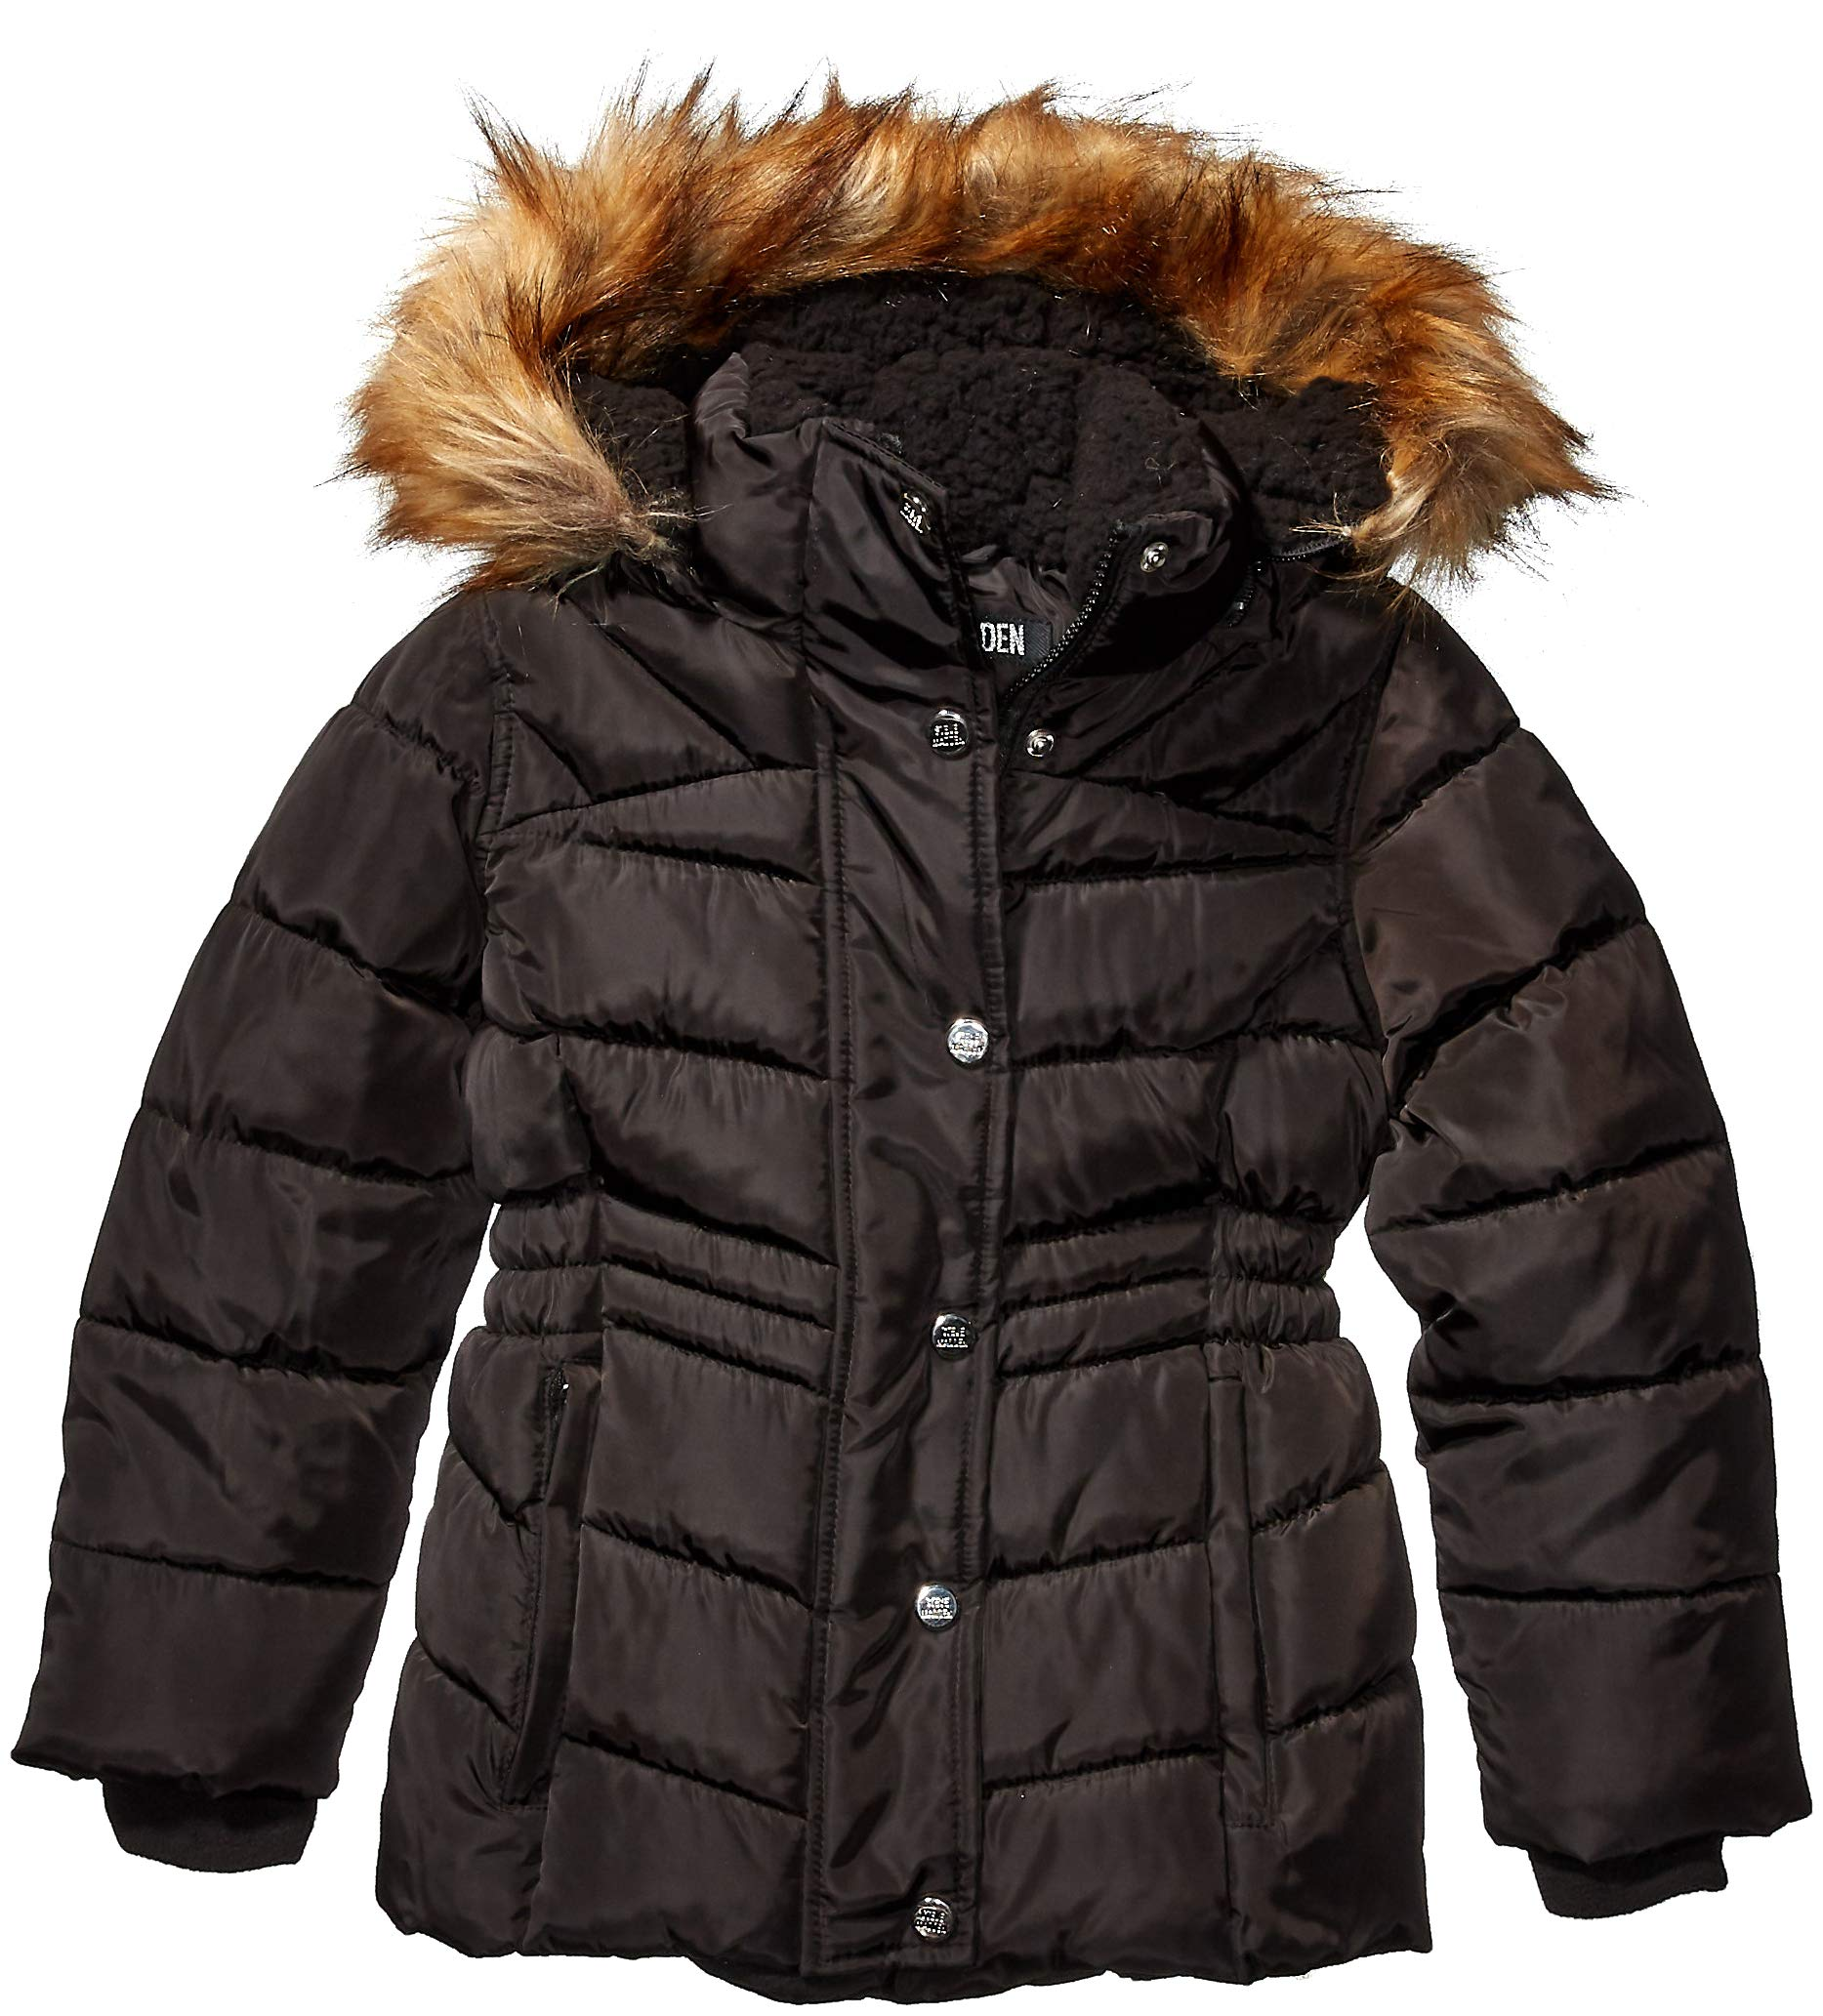 Steve Madden Girls Girls' Big Bubble Jacket (More Styles Available), Signature Black, 14/16 by Steve Madden